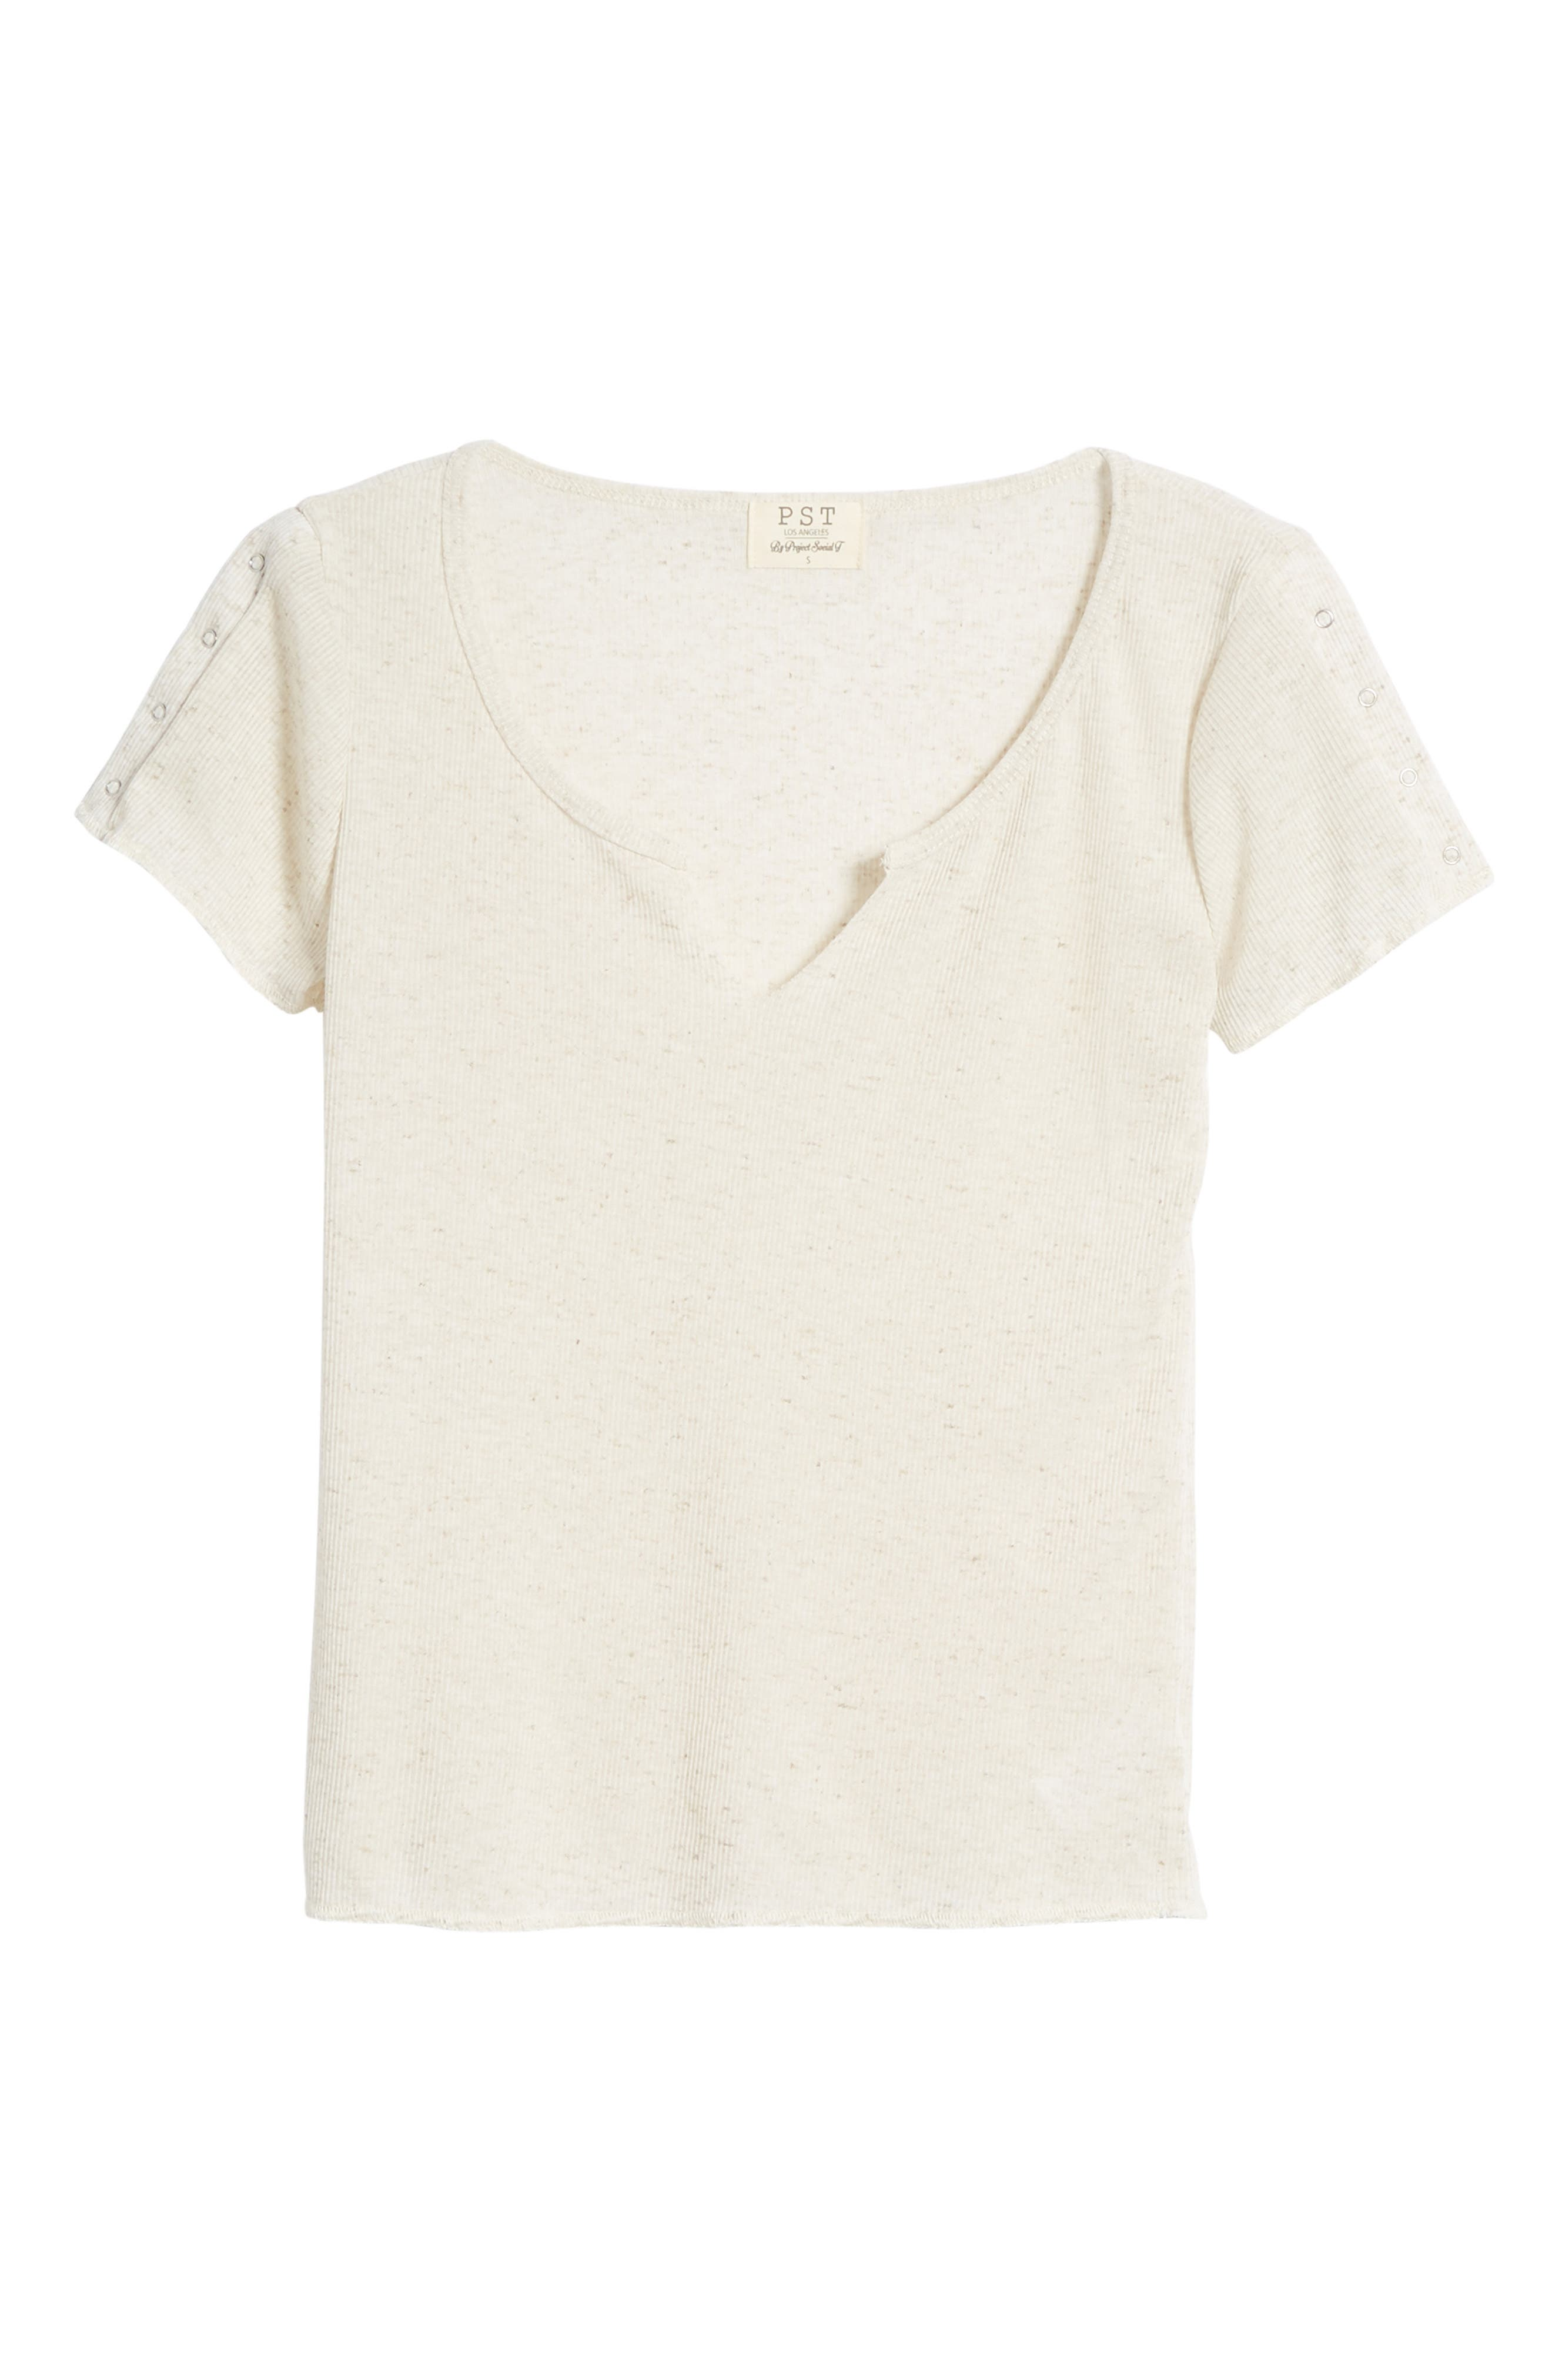 Notch Neck Tee,                             Alternate thumbnail 7, color,                             Linen Oatmeal